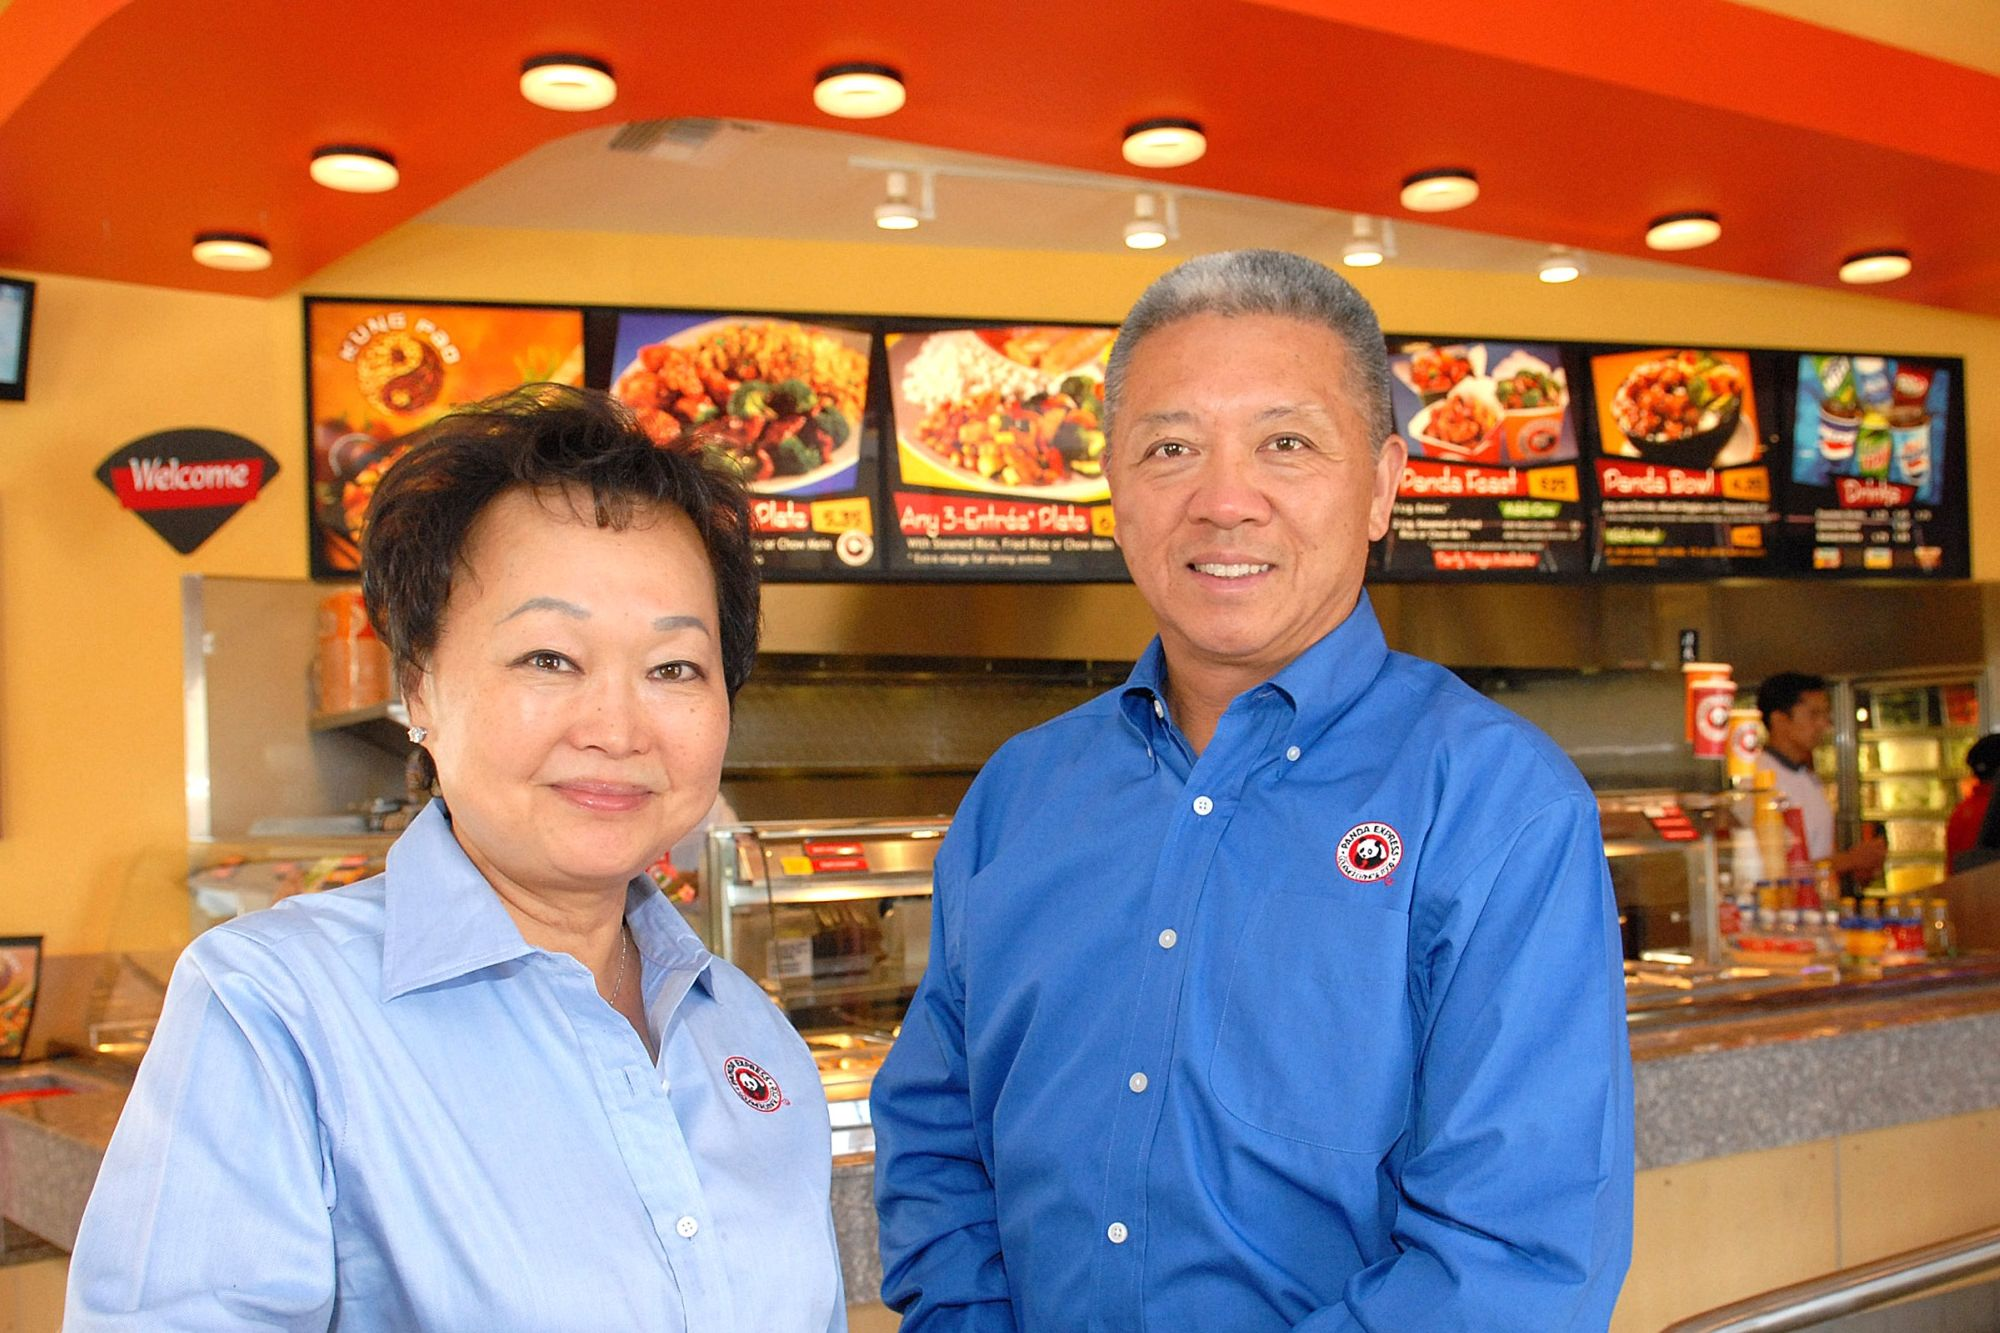 Meet the Billionaire Couple Behind Panda Express, Who Built a $3 Billion Fortune Selling 90 Million Pounds of Orange Chicken Each Year